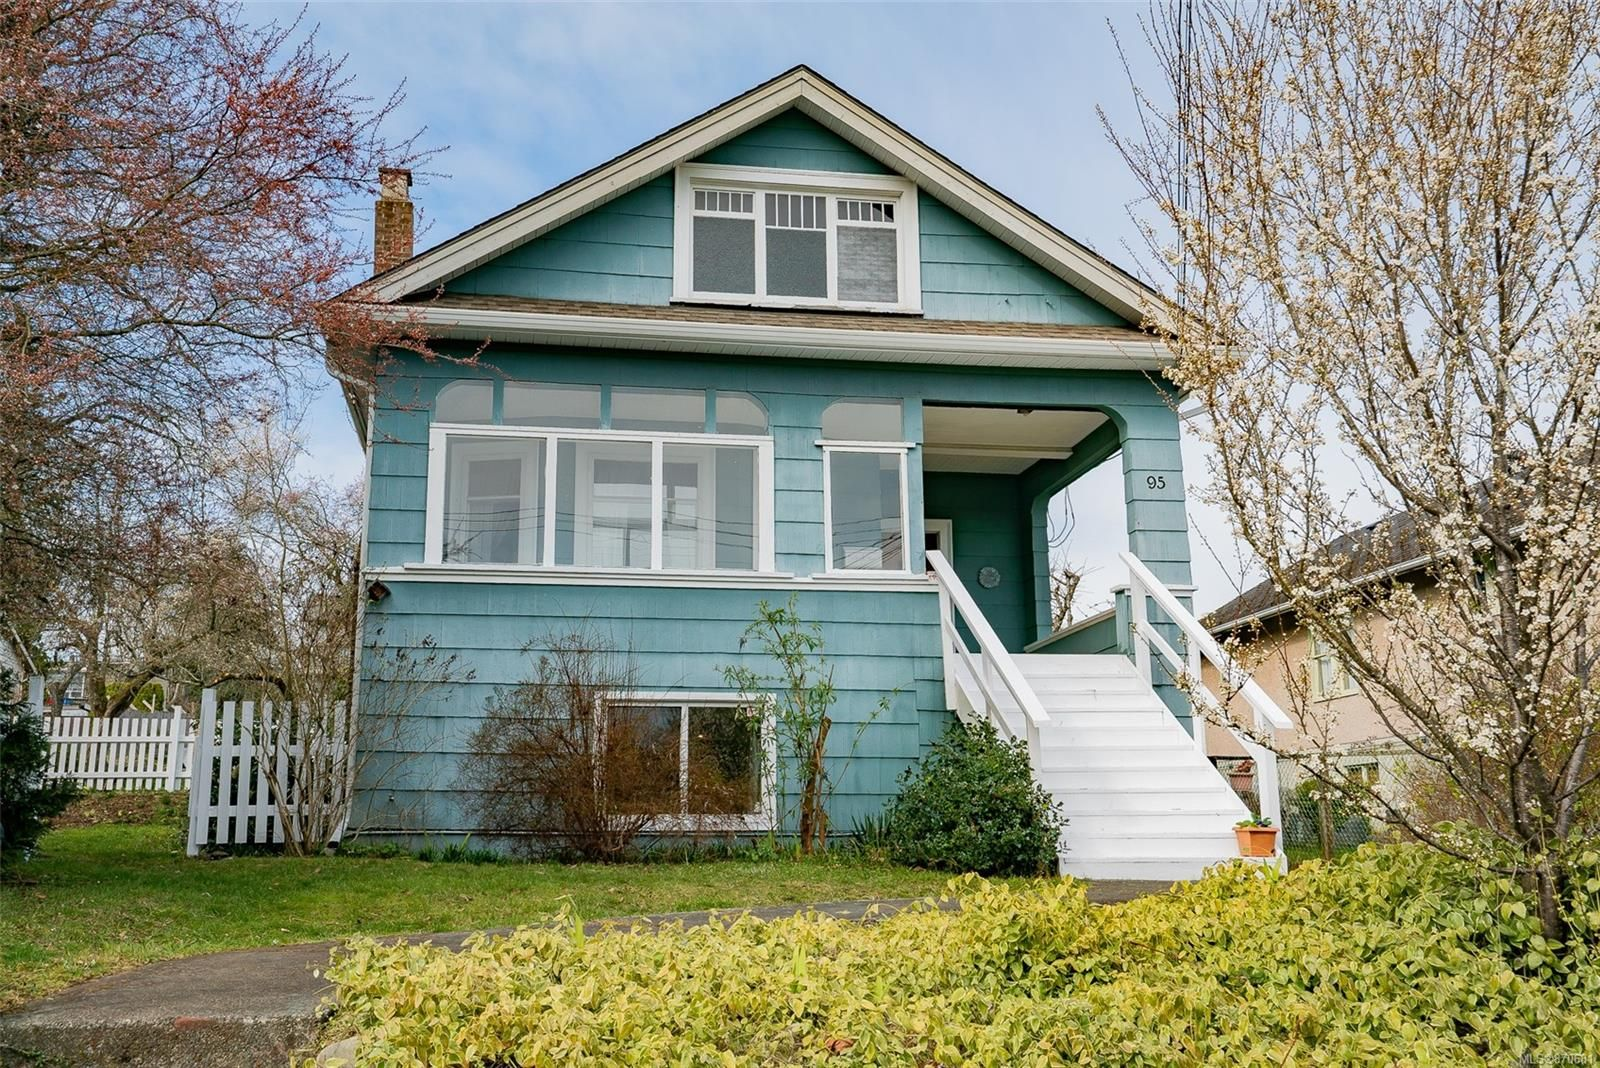 Main Photo: 95 Machleary St in : Na Old City House for sale (Nanaimo)  : MLS®# 870681